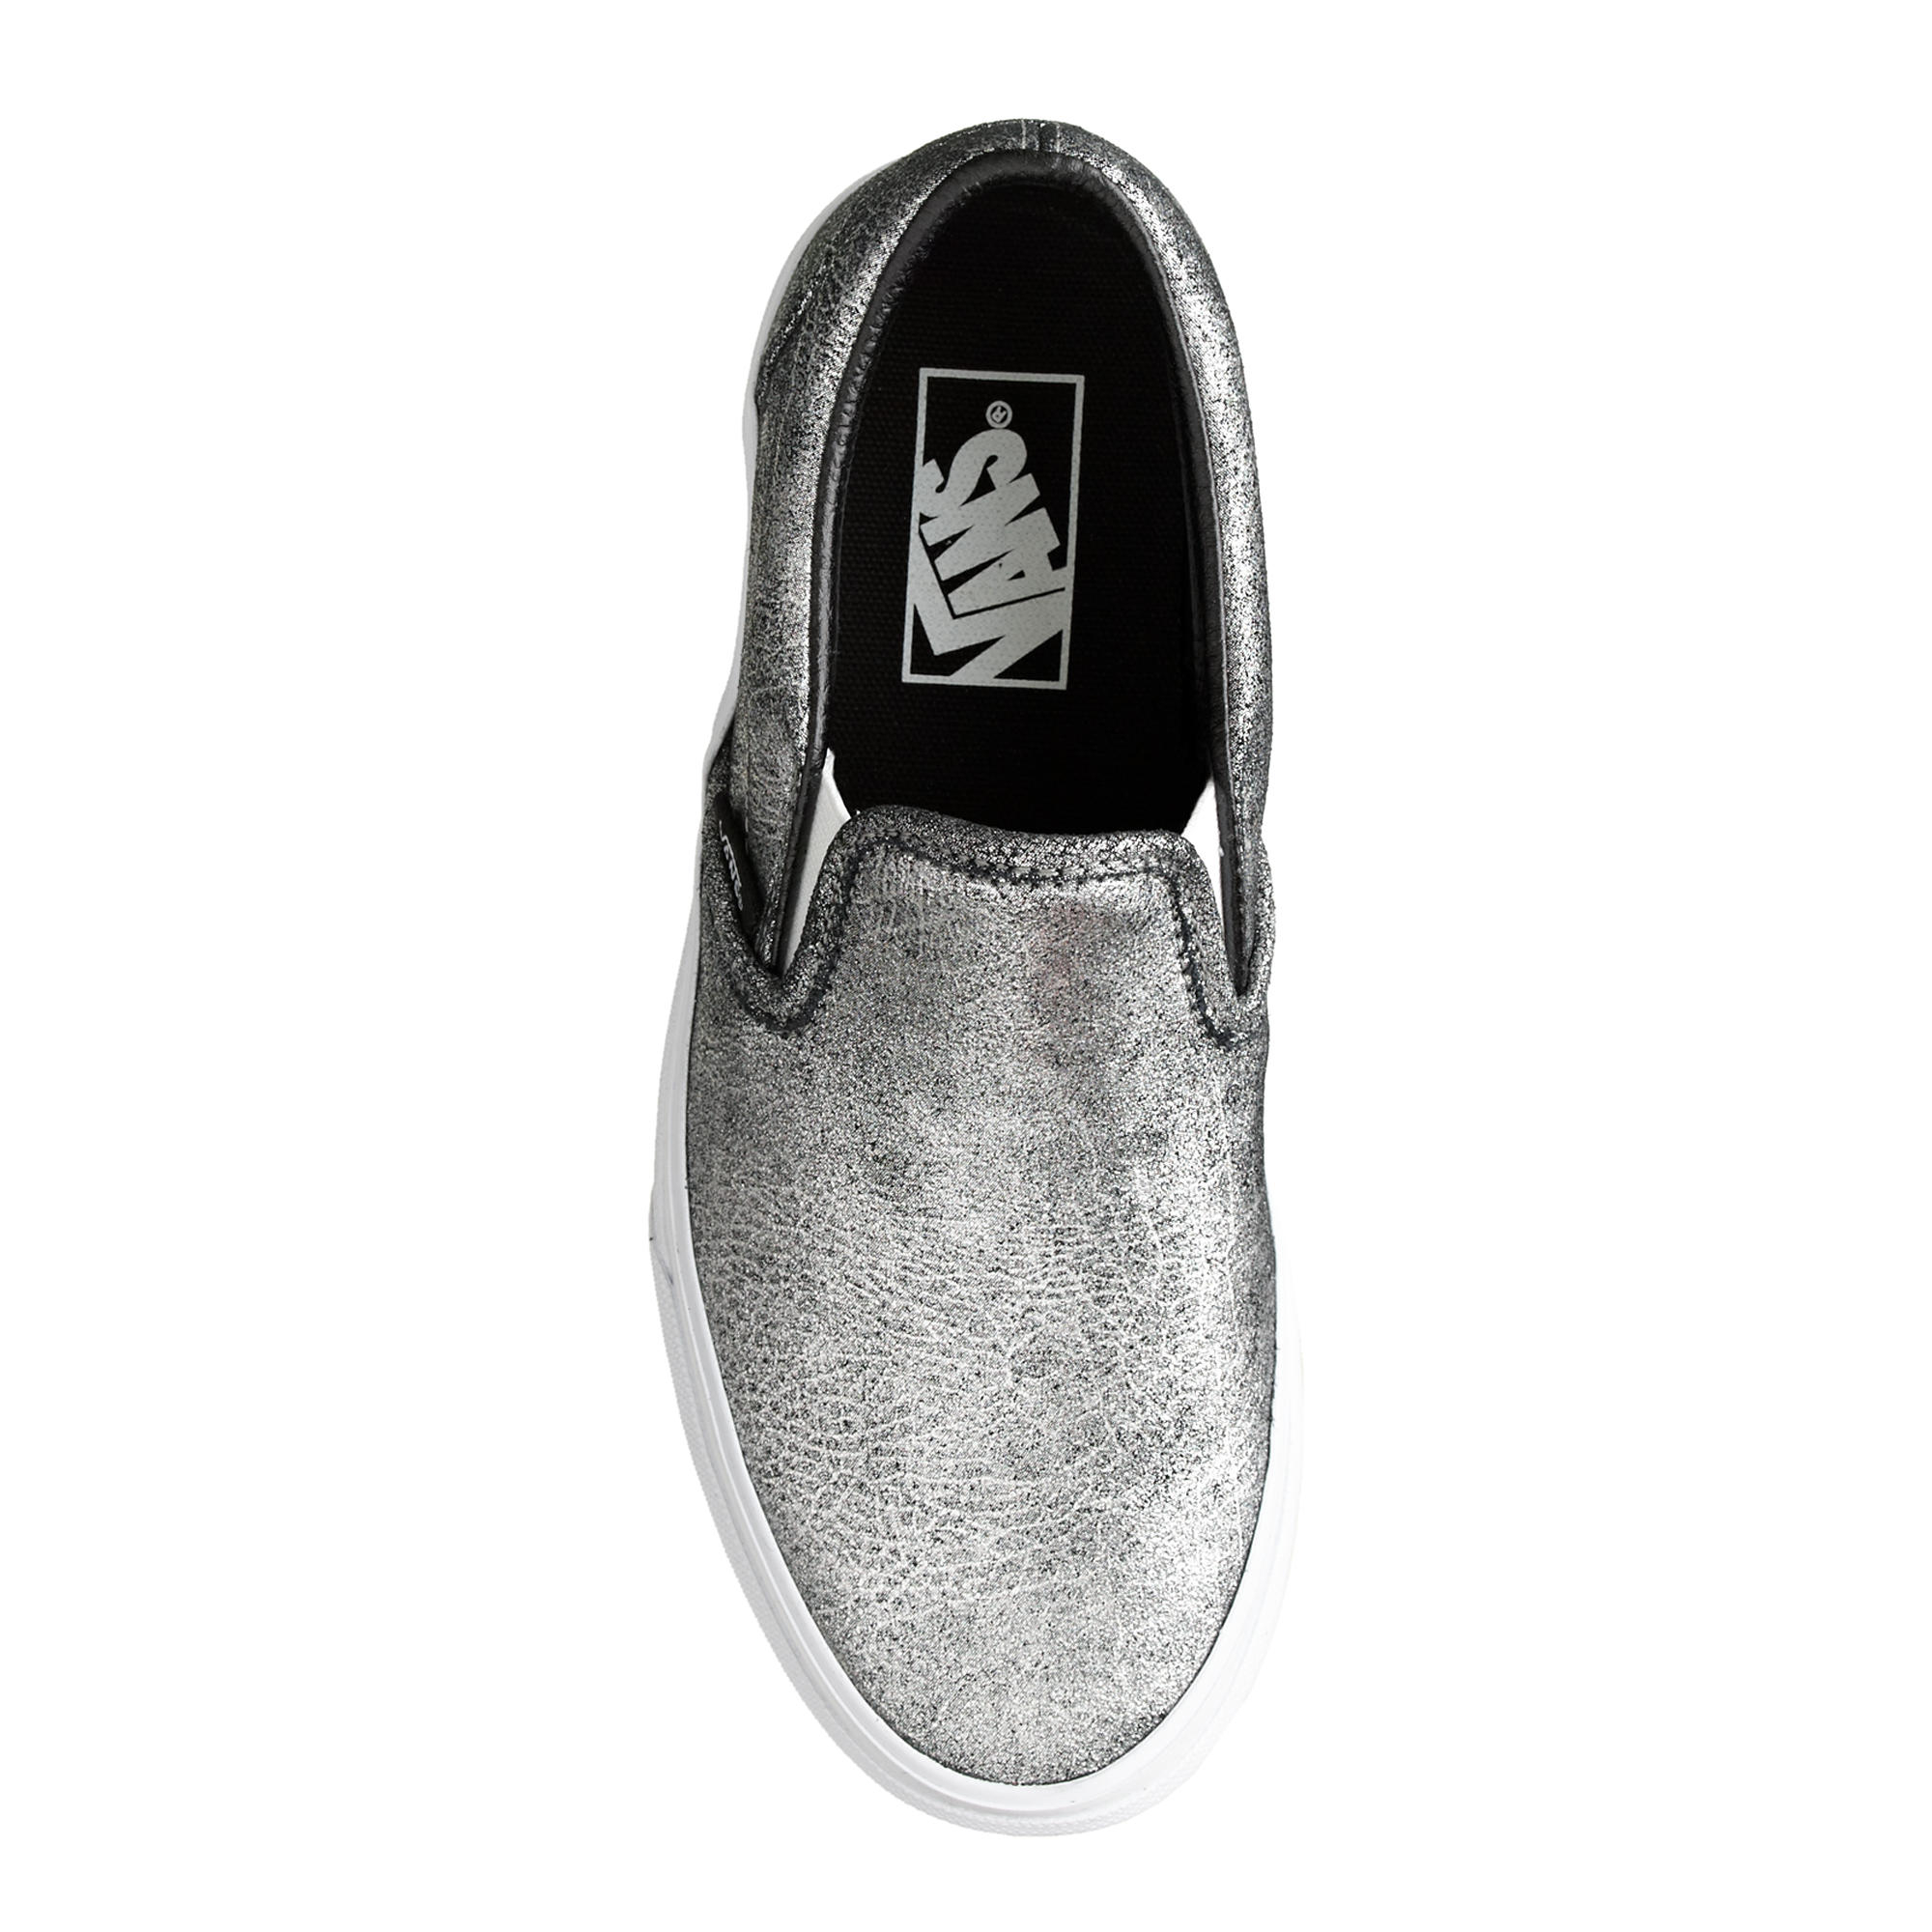 cc802d4f265 Lyst - J.Crew Unisex Vans Classic Slip-on Sneakers In Metallic ...